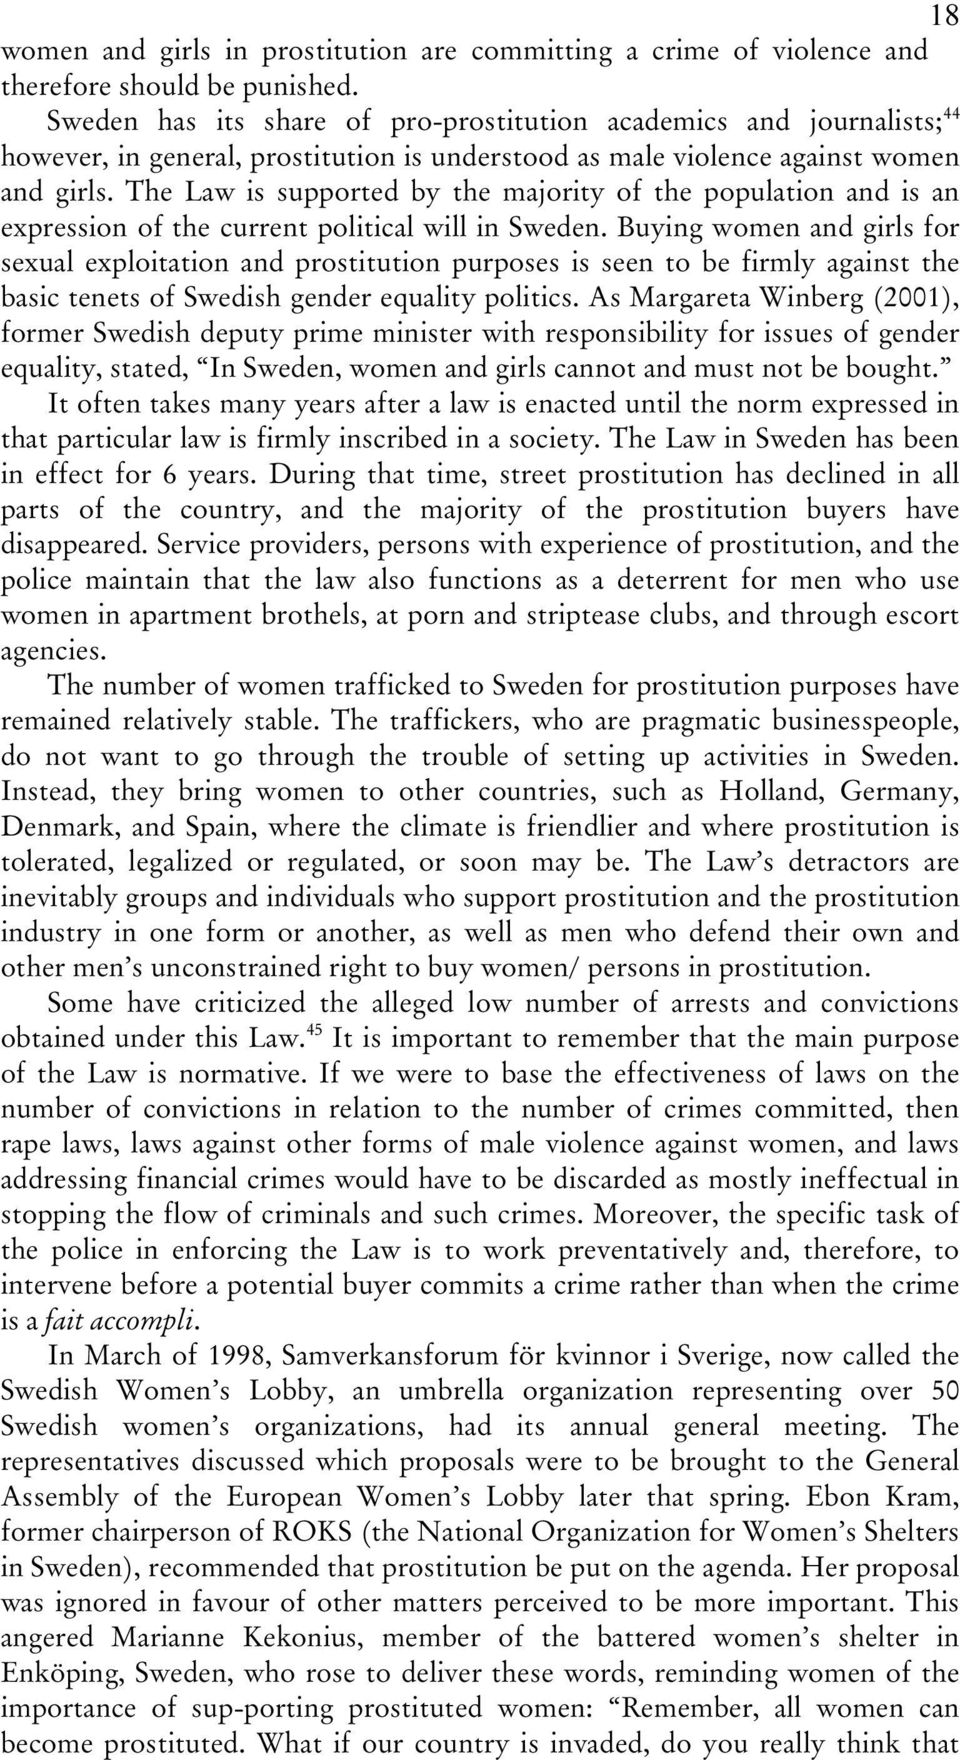 The Law is supported by the majority of the population and is an expression of the current political will in Sweden.